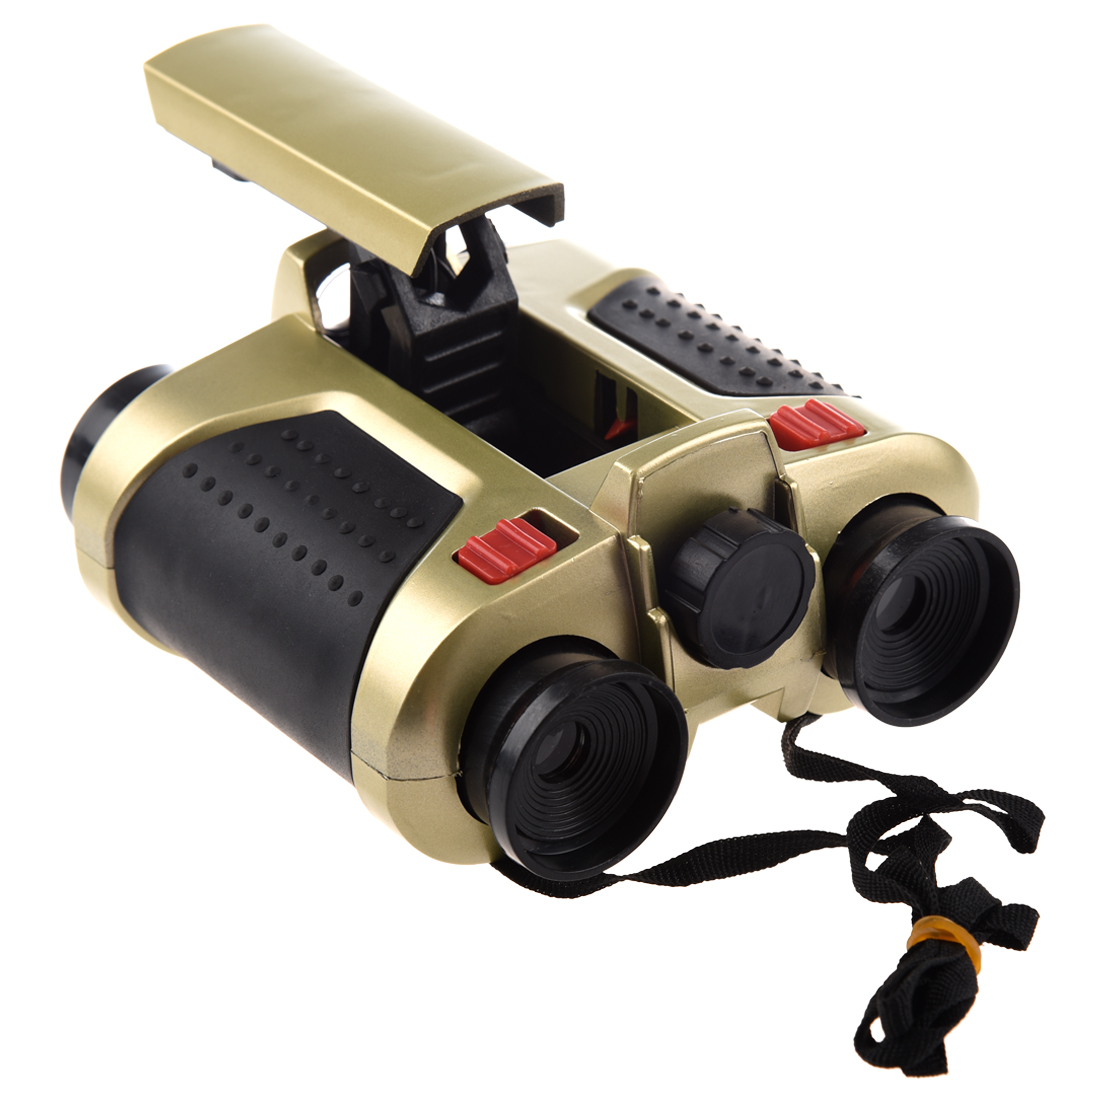 JFBL 2X 4x30 Night Scope font b Binoculars b font w POP Up Light